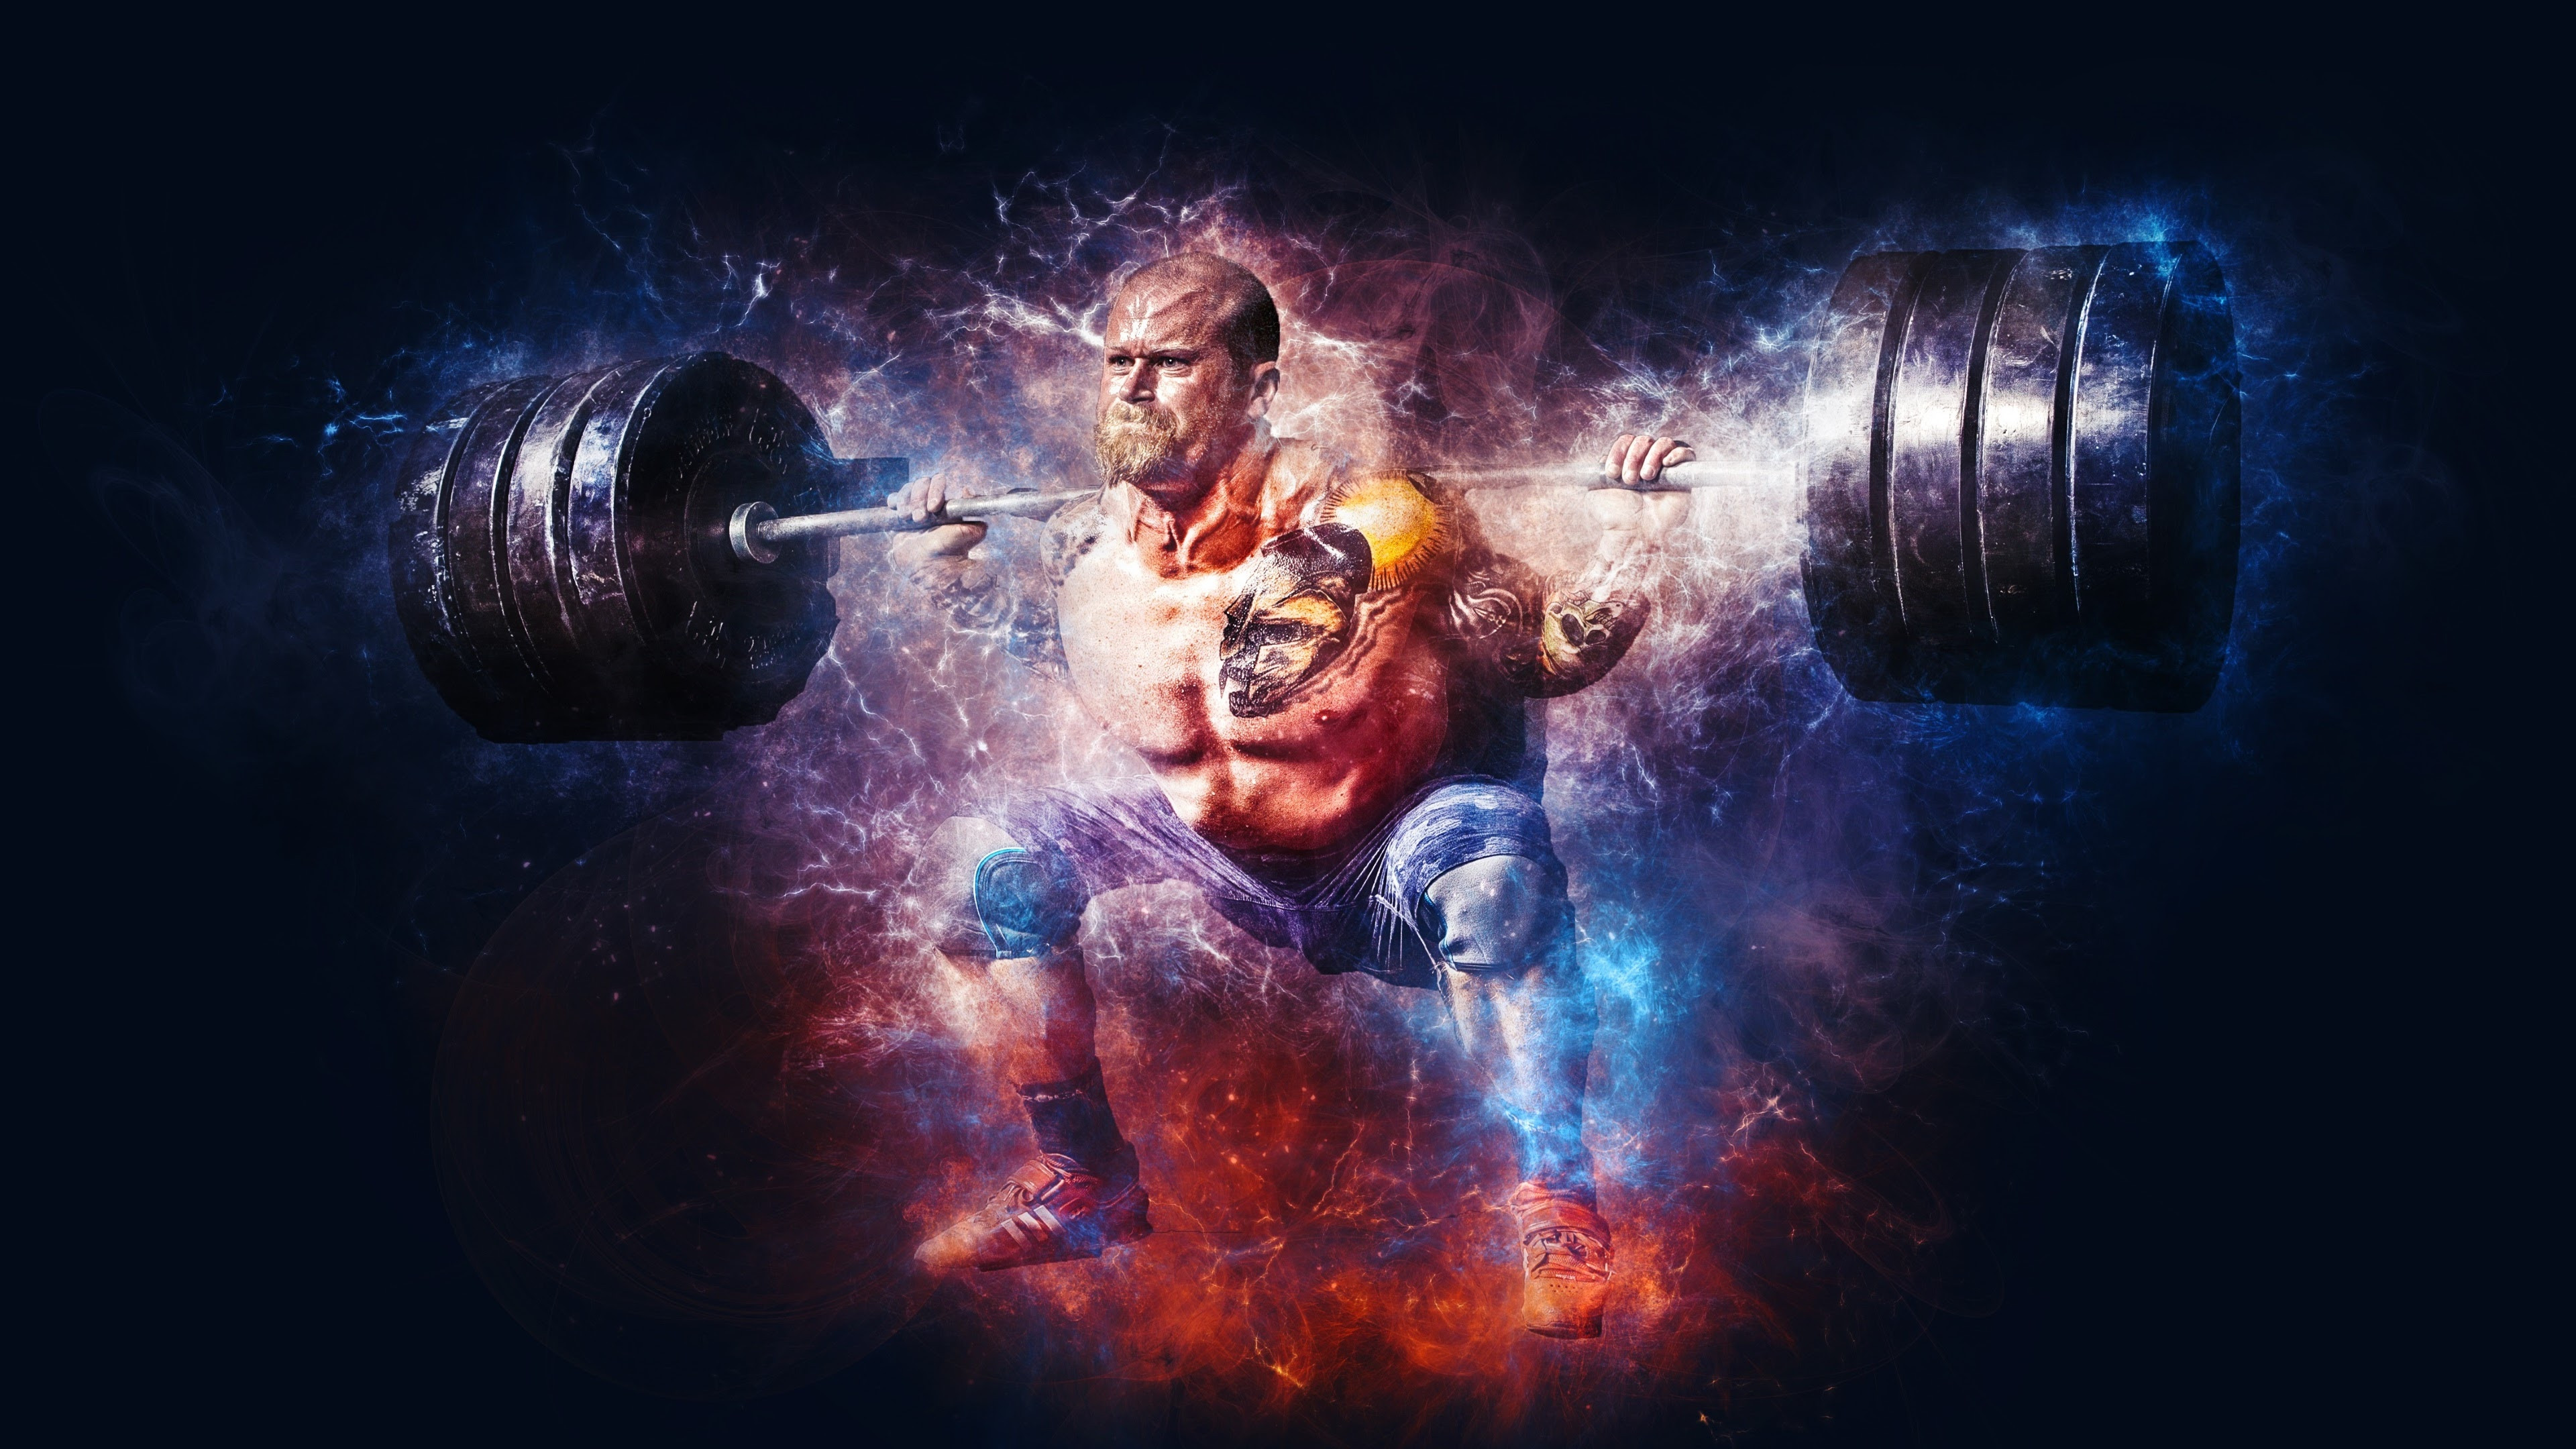 Bodybuilding wallpaper 3840x2160